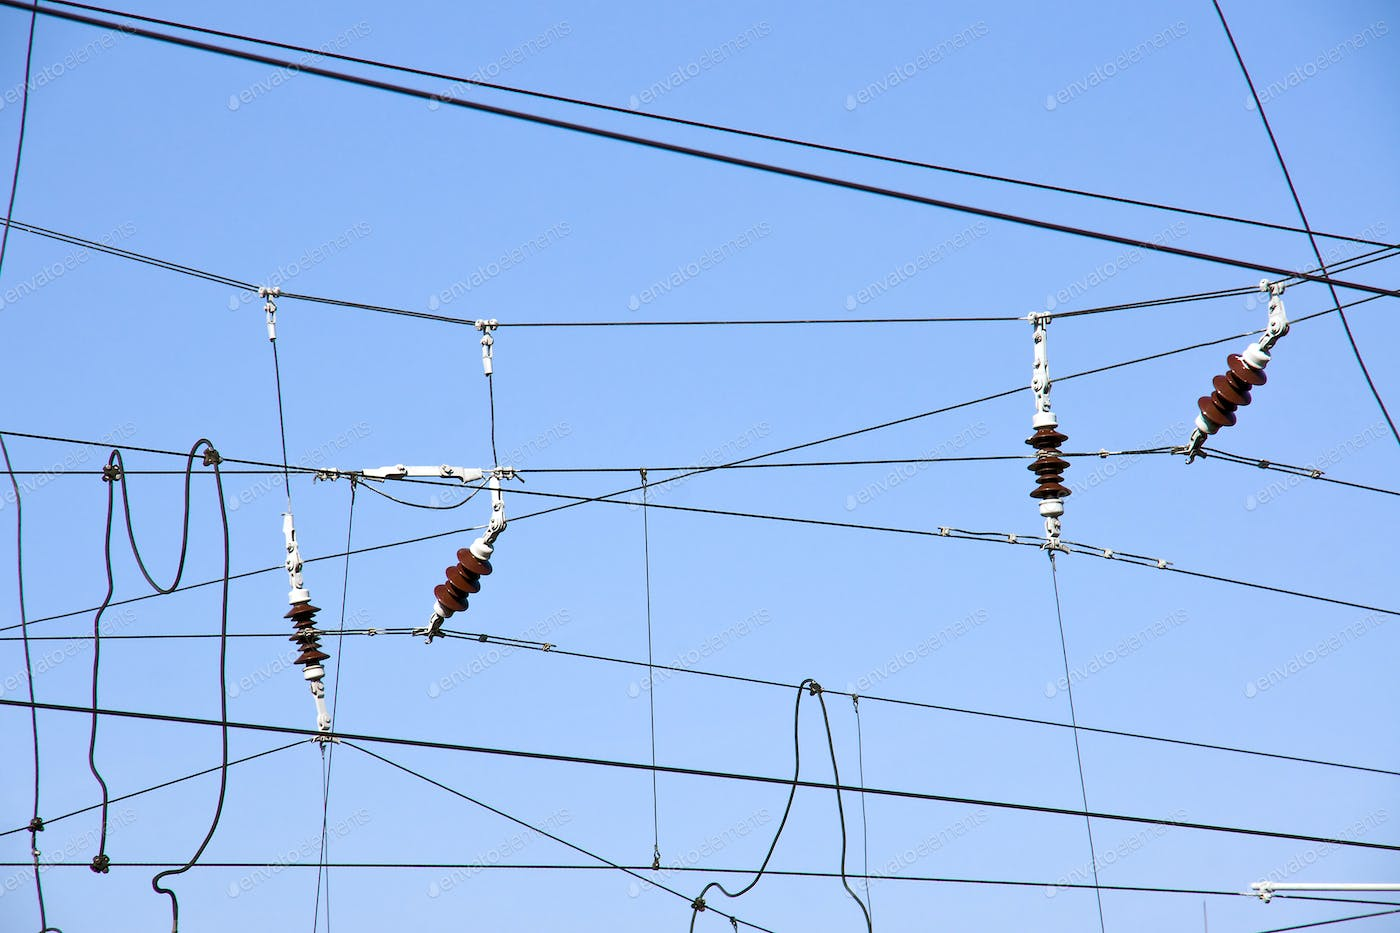 Overhead Contact Wires Photo By Elxeneize On Envato Elements Wiring A Shoebox House